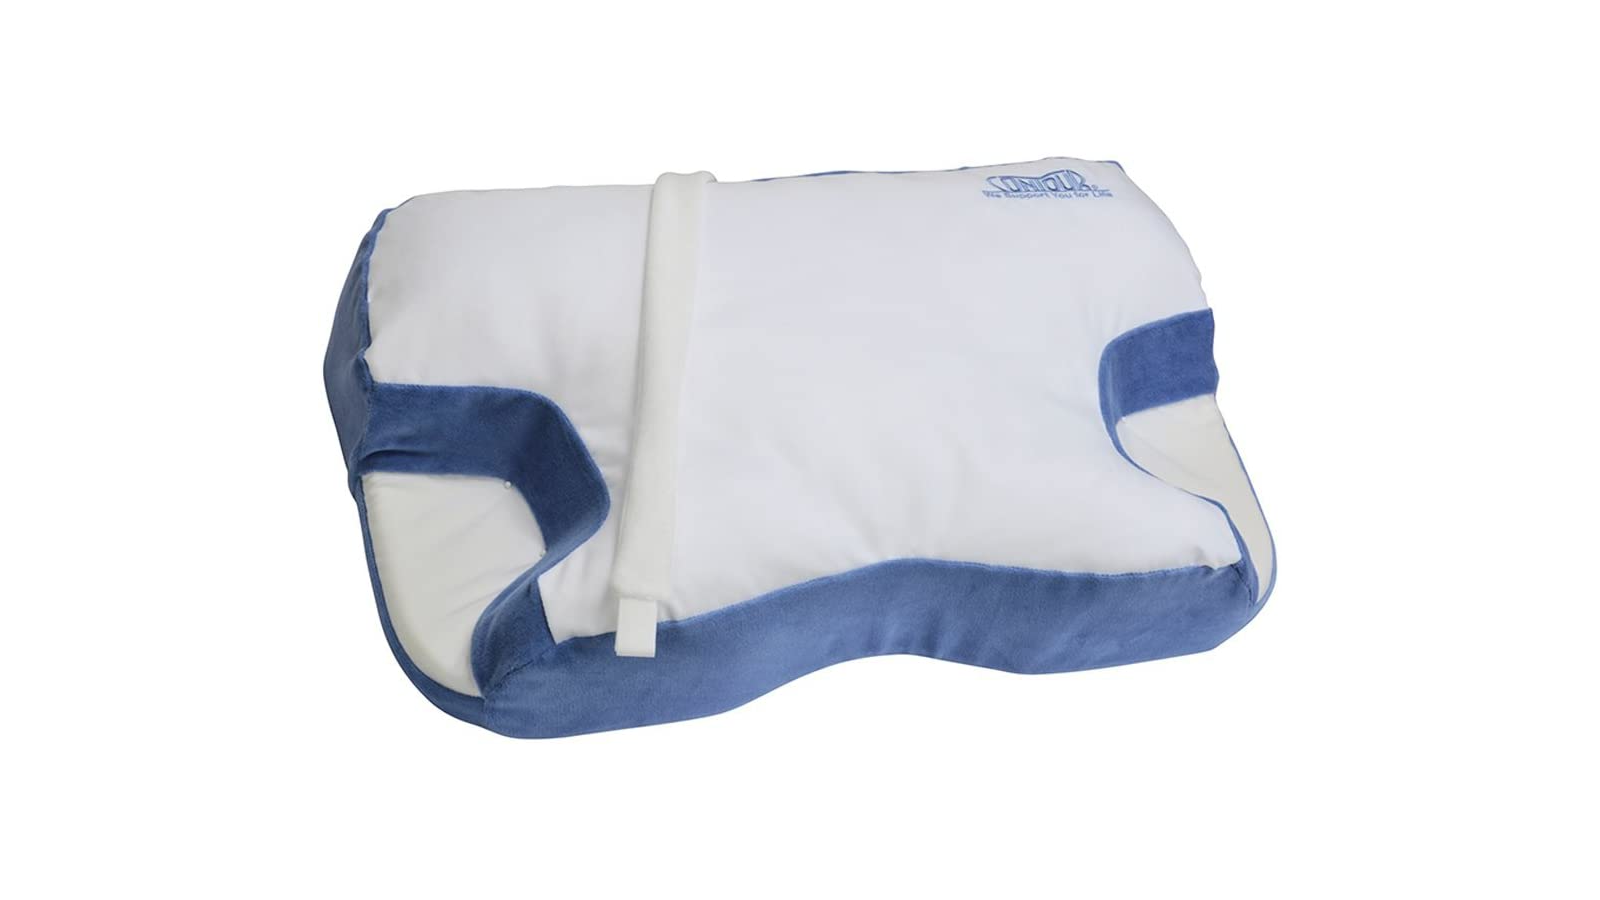 Bluish pillow with hose tether